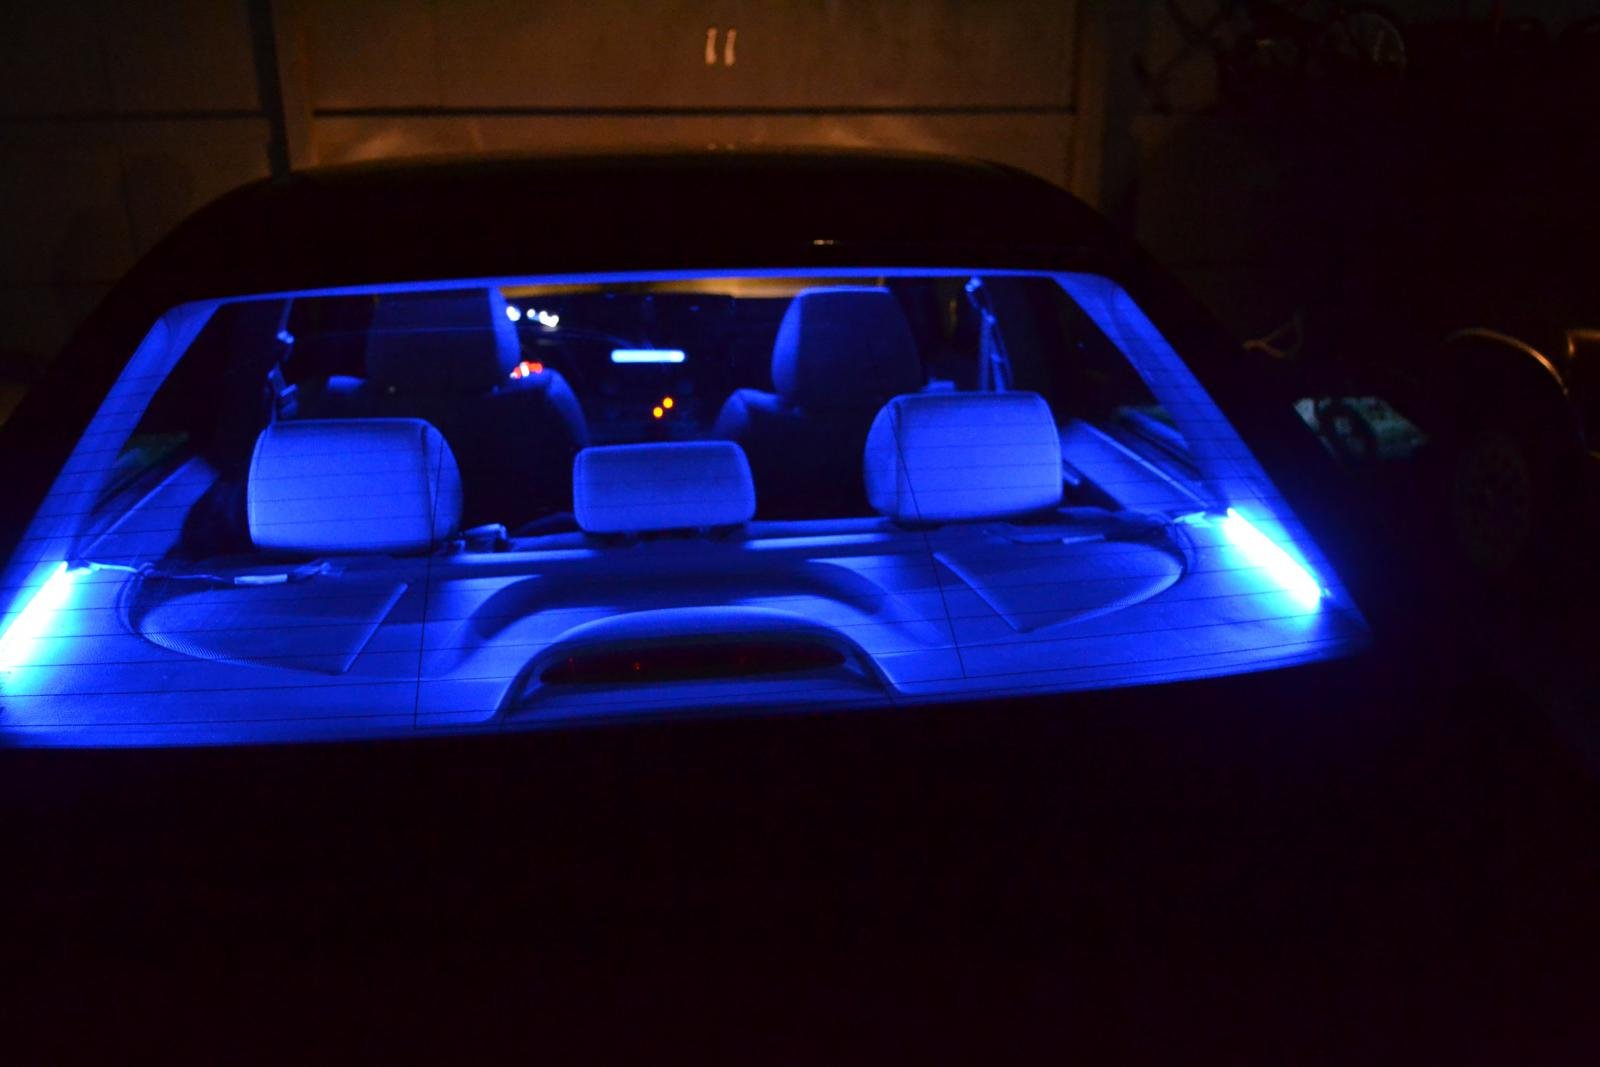 2007 Civic Sedan Lx Interior Illumination Led 8th